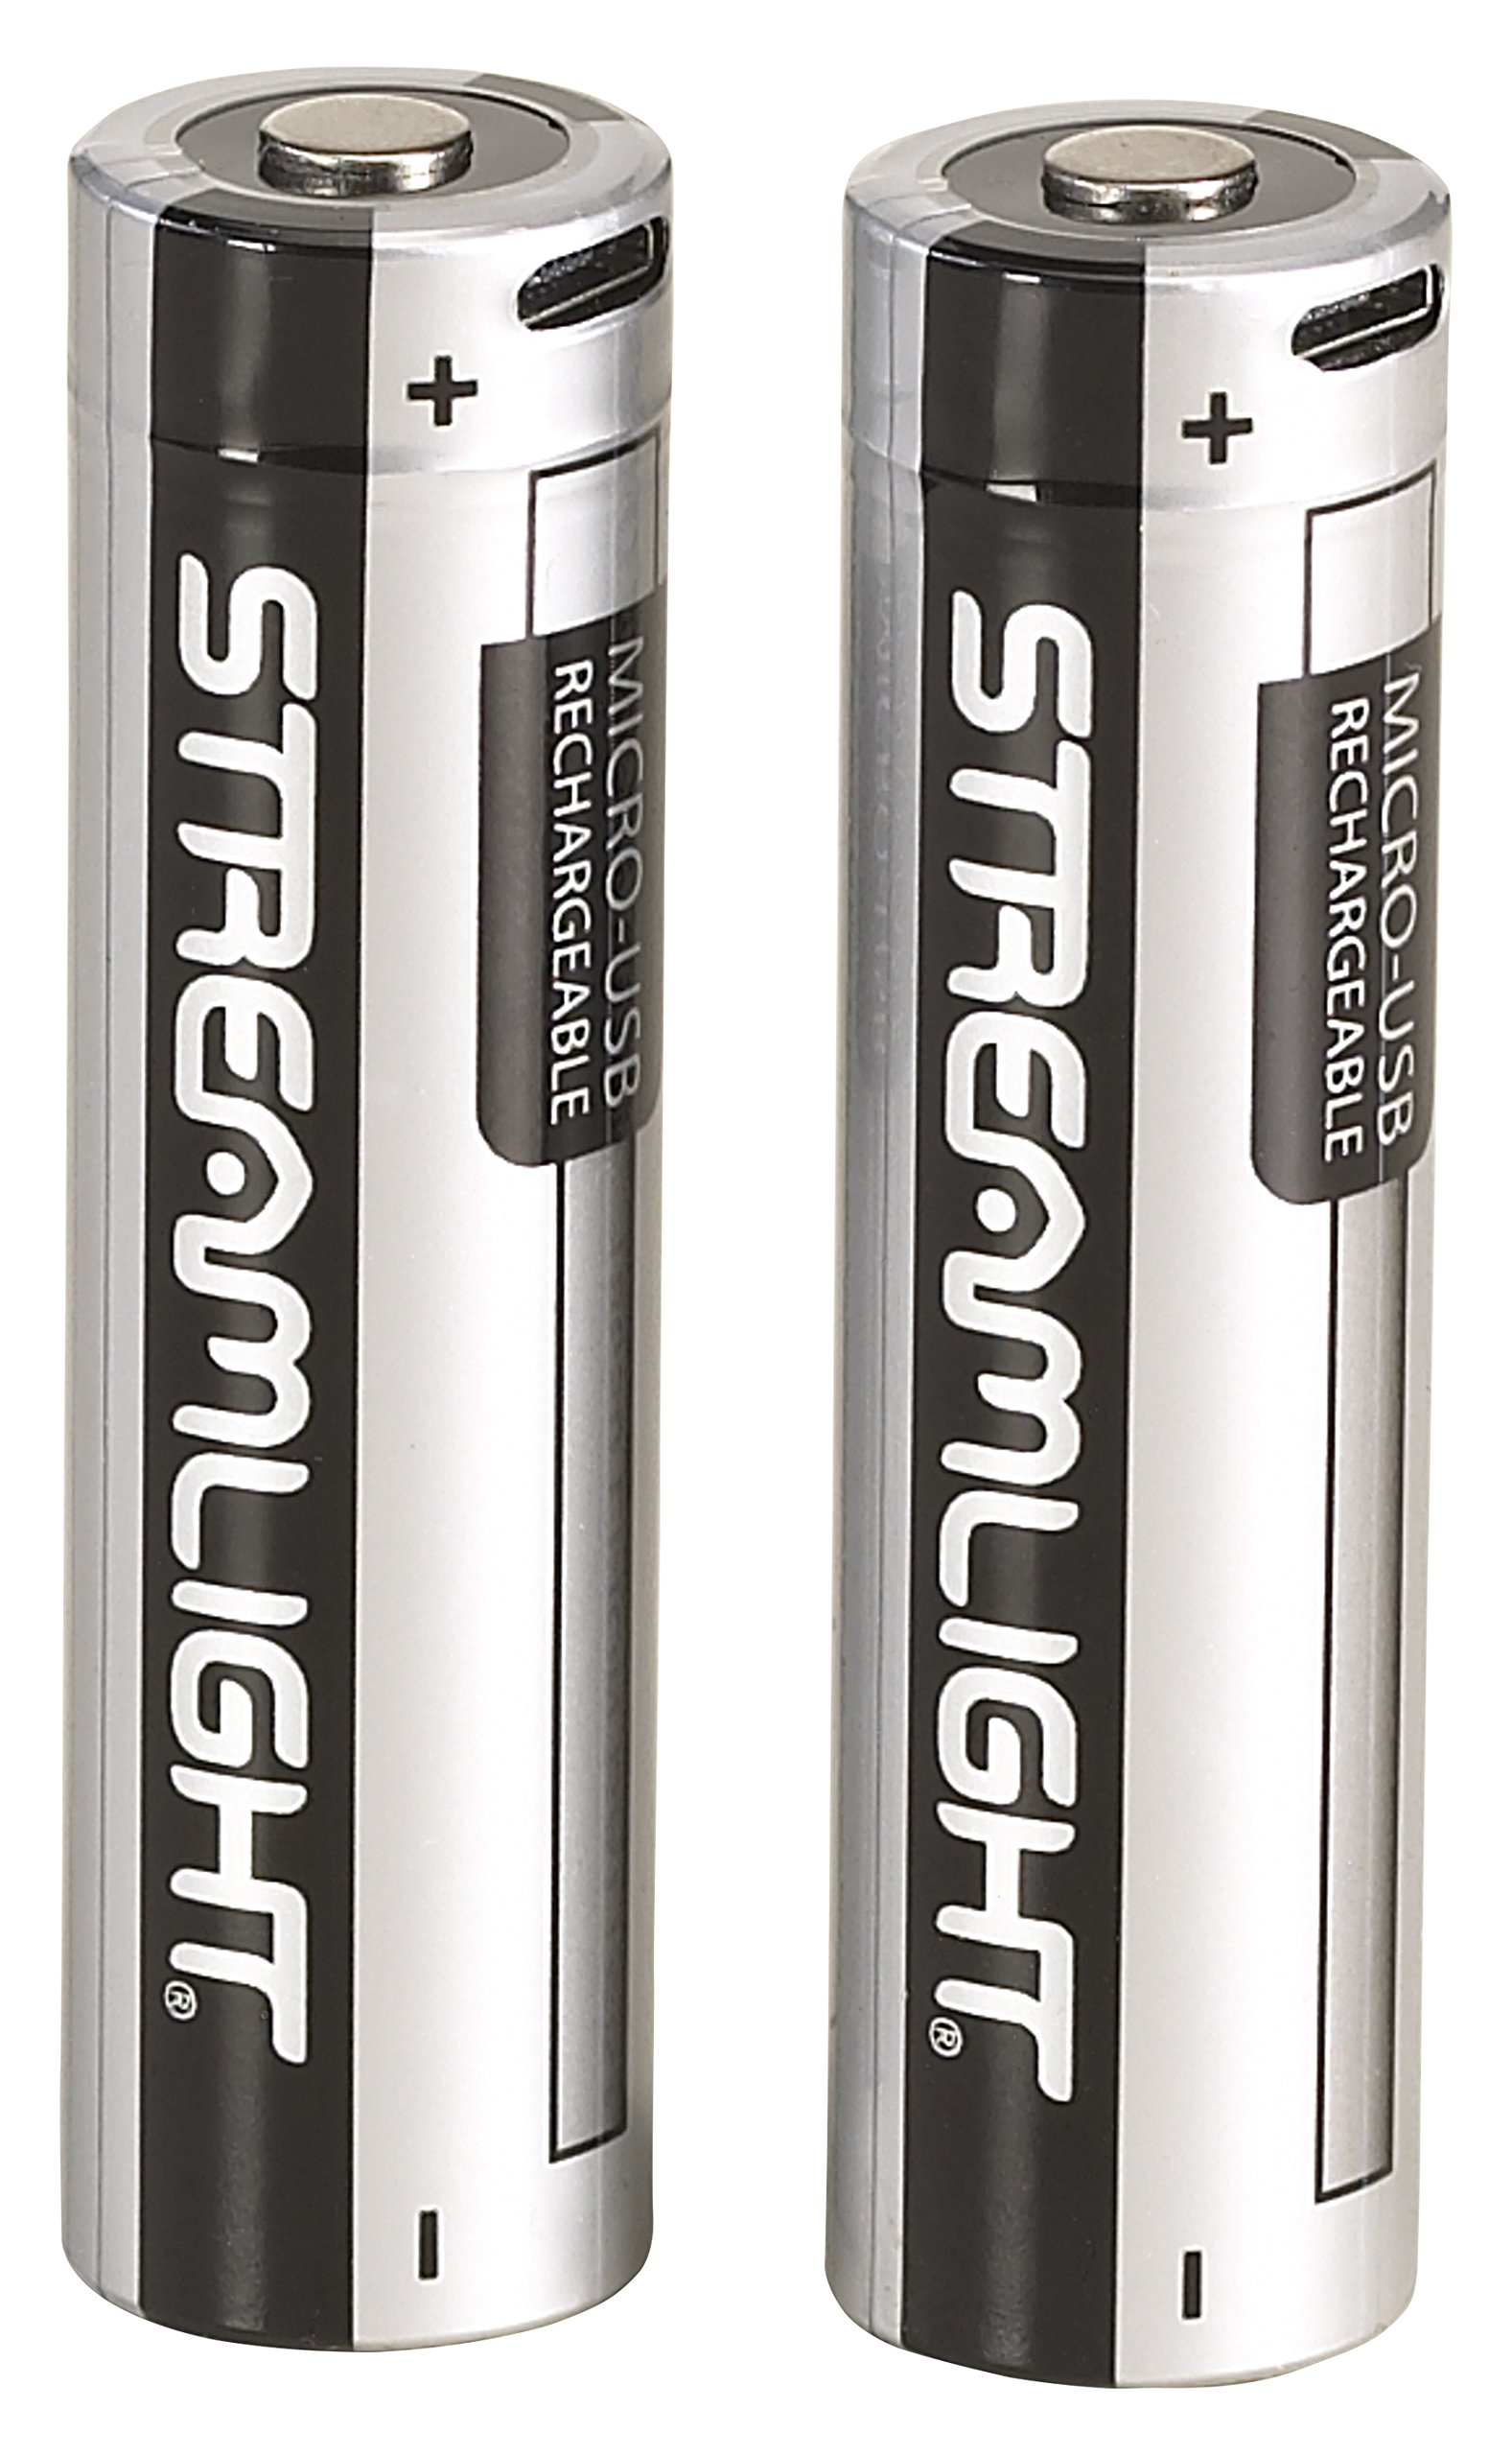 Streamlight 22102 USB Rechargeable 18650 Lithium Ion Battery, 2-Pack